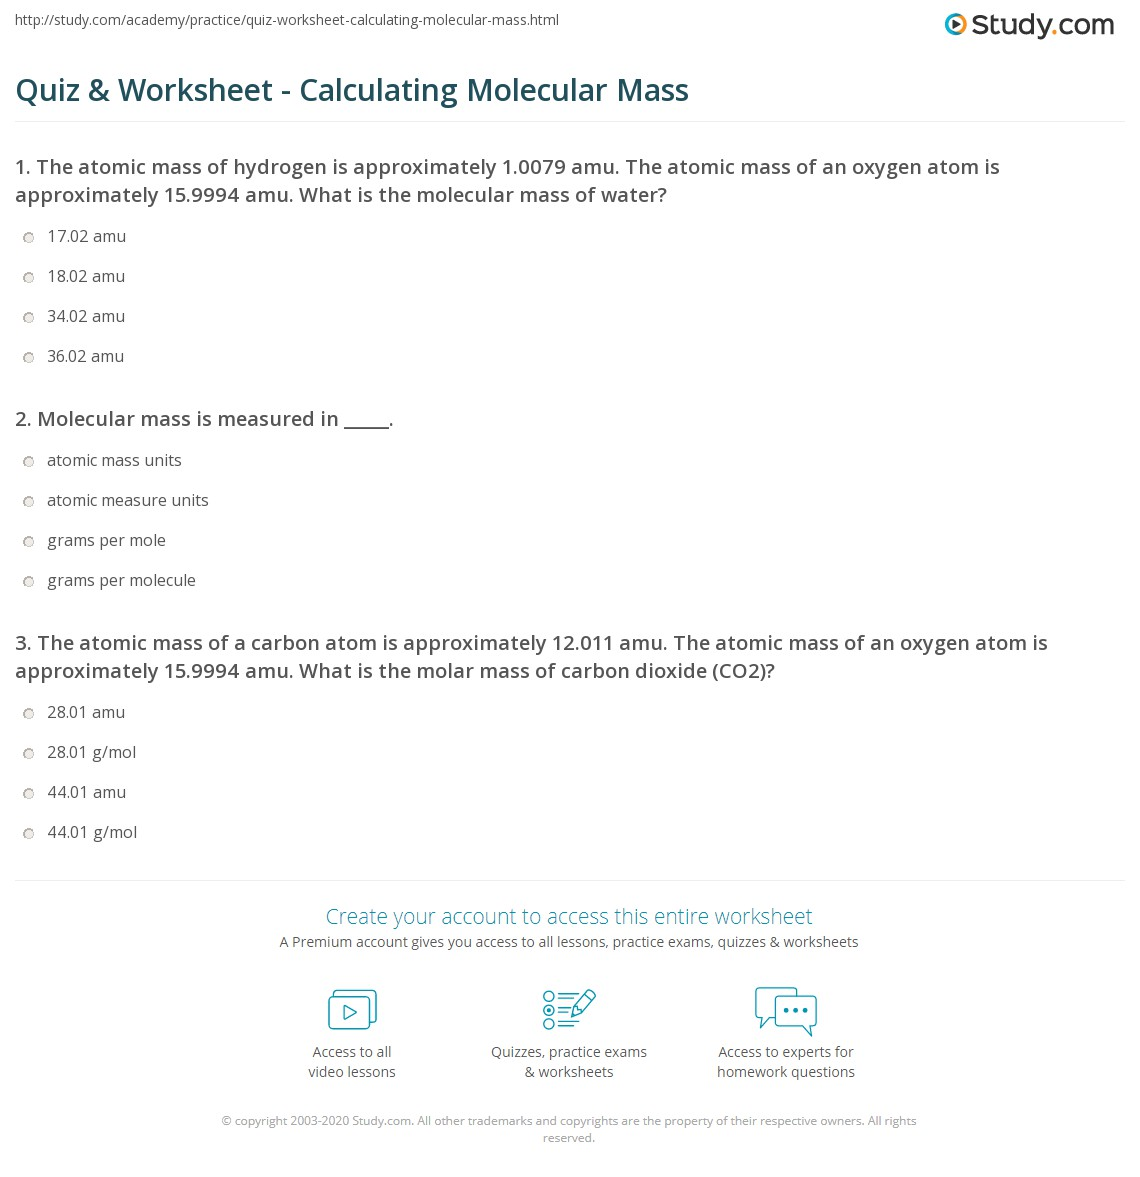 Quiz & Worksheet - Calculating Molecular Mass | Study.com